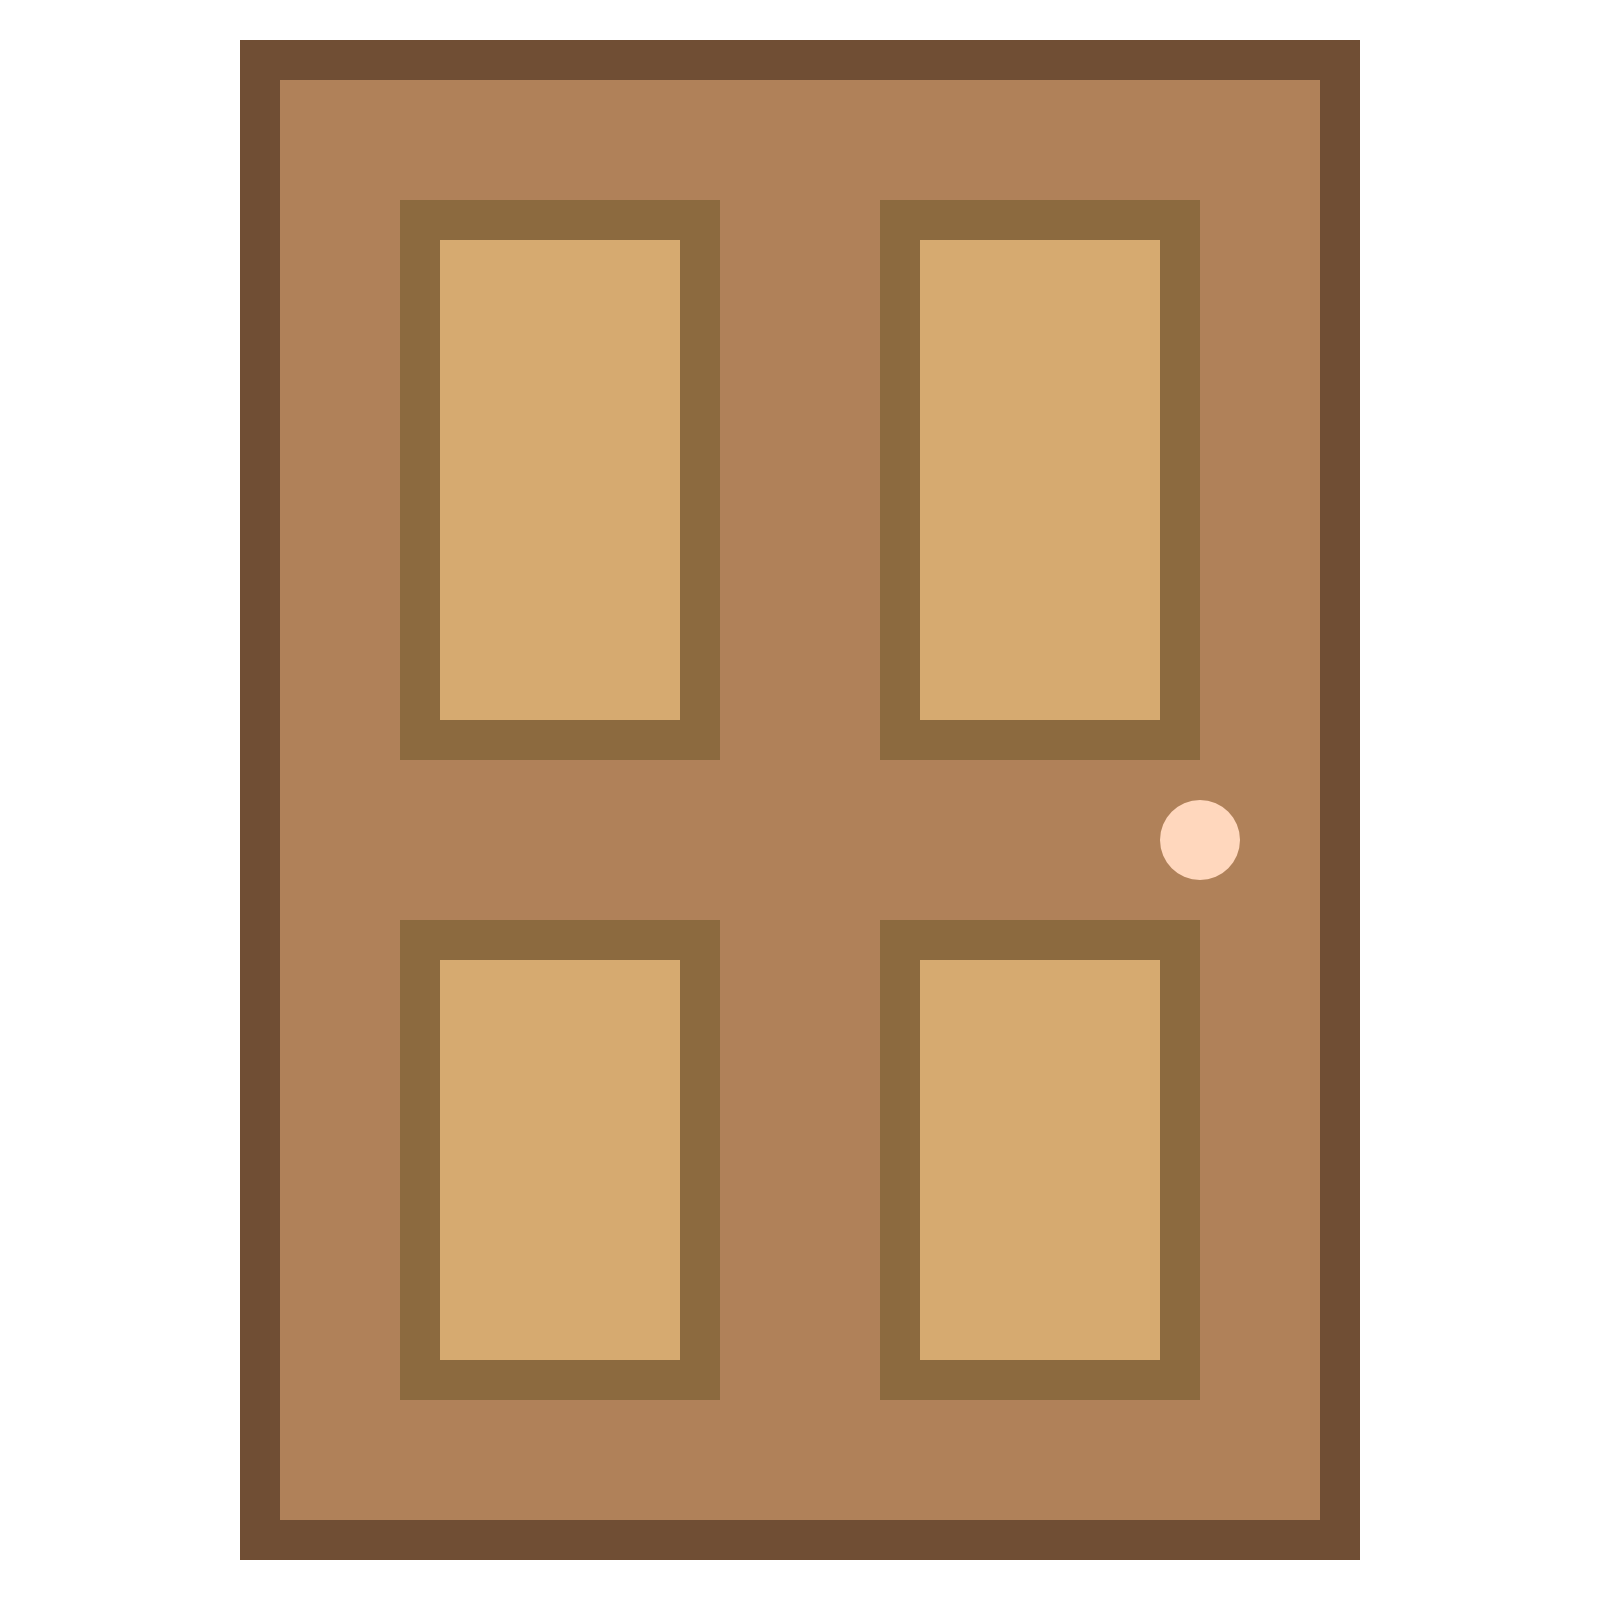 free download Icon png transparentpng. Vector door transparent